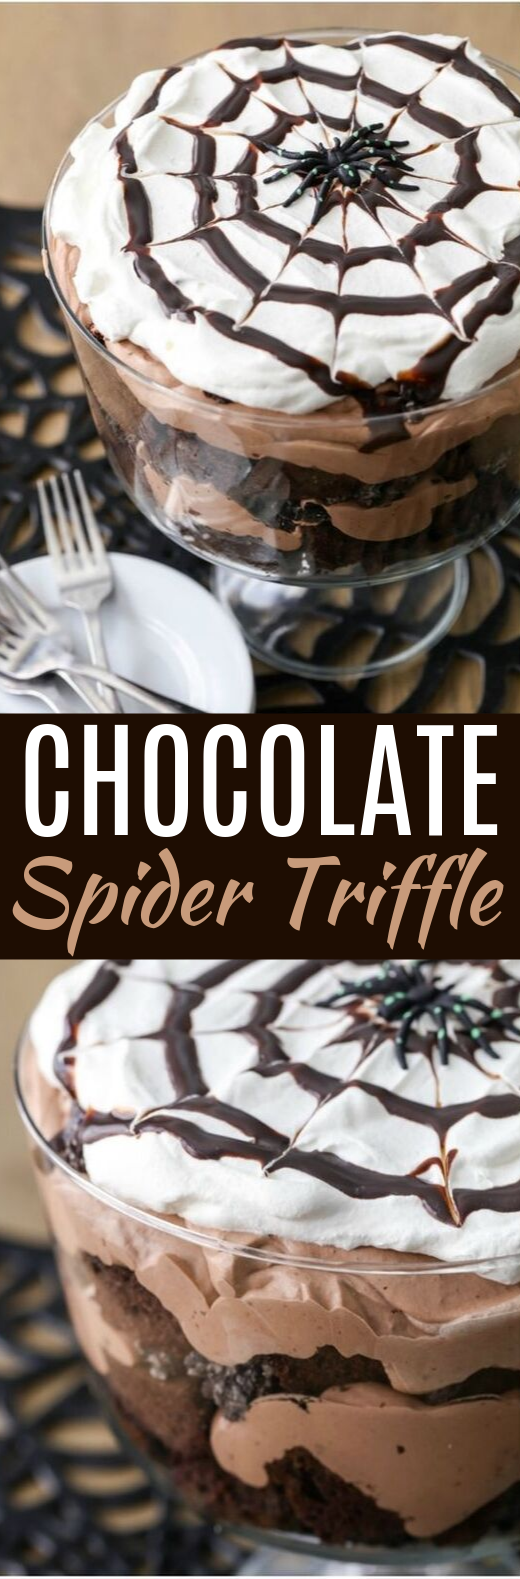 Chocolate Spider Trifle #chocolate #desserts